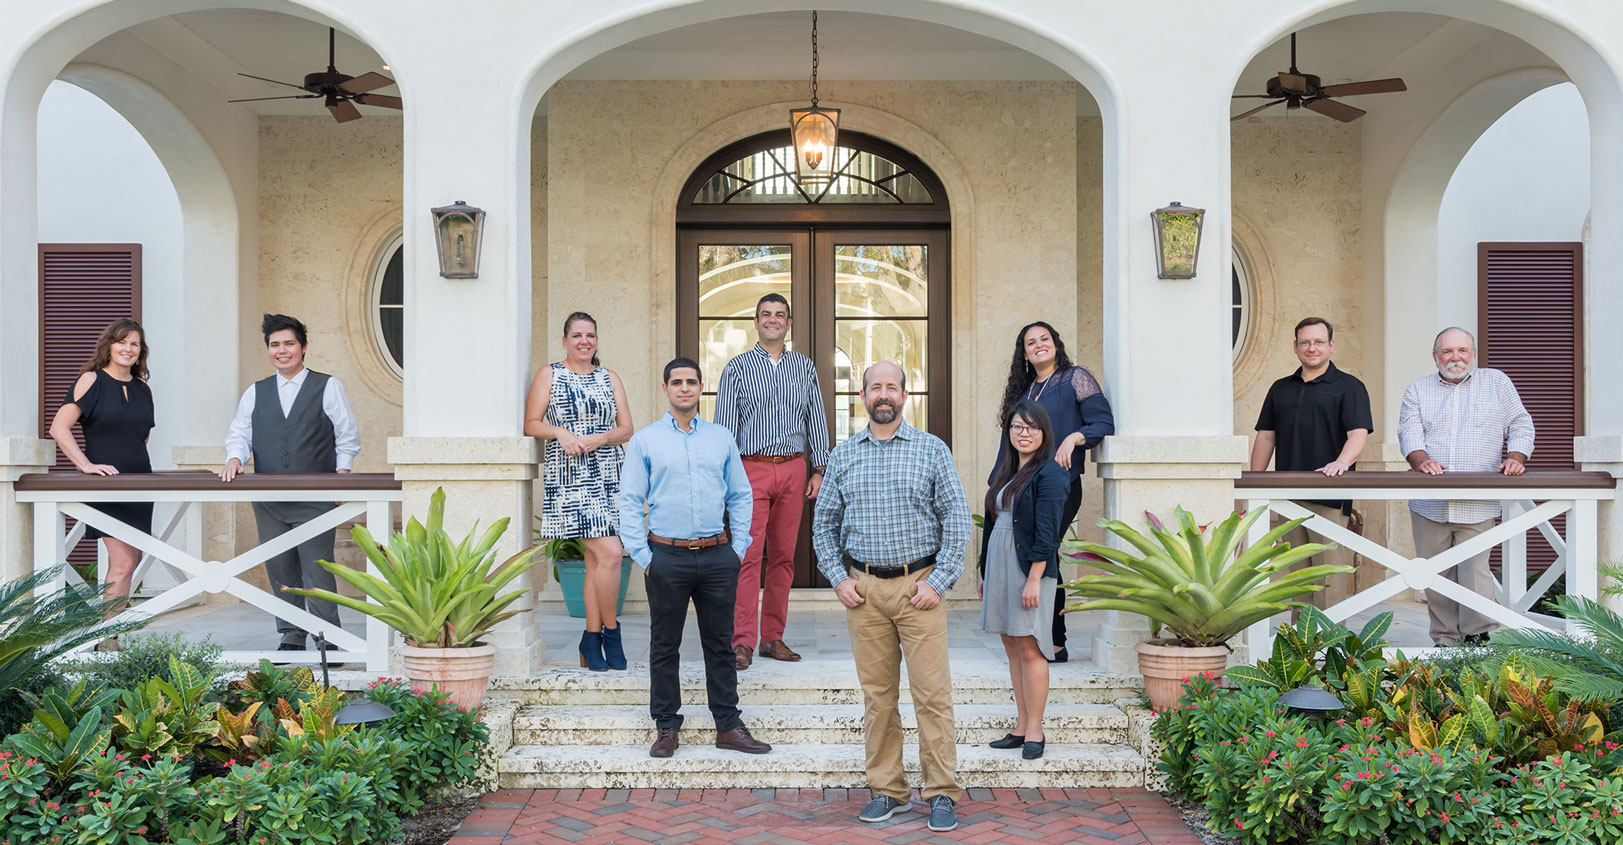 The Kukk Architecture and Design Team   Architectural Firm Naples, Florida